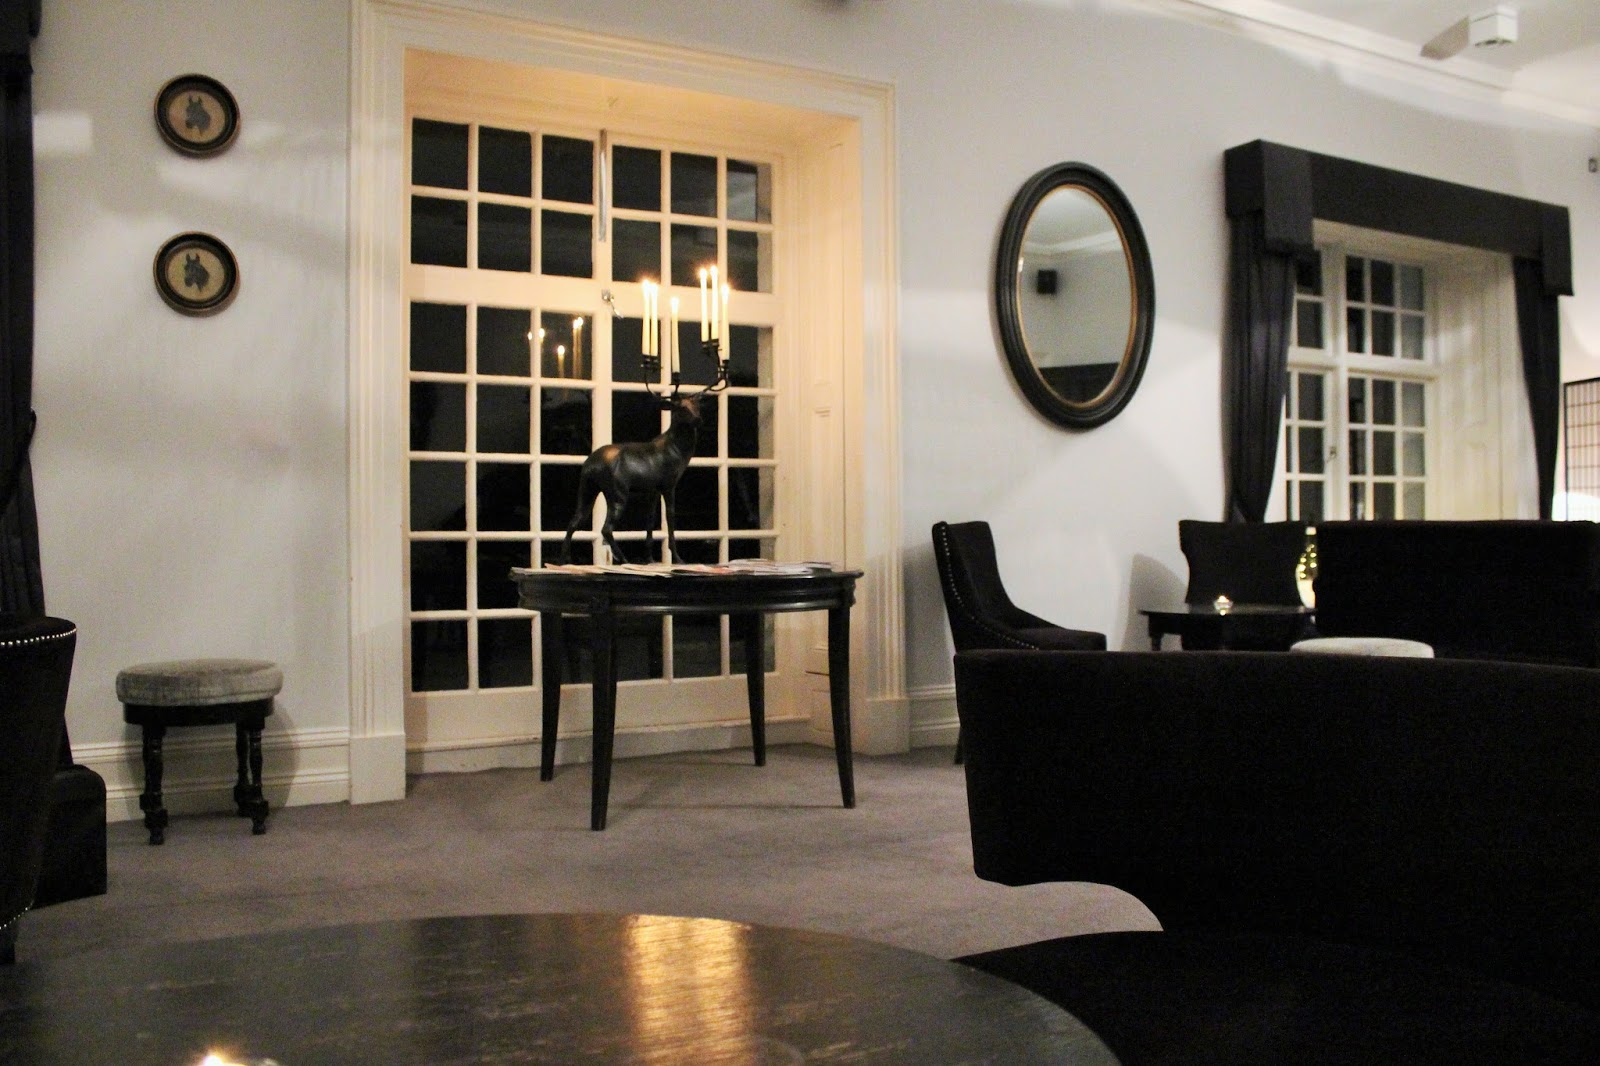 Paddocks House Hotel, Newmarket, Cambridgeshire - The Study